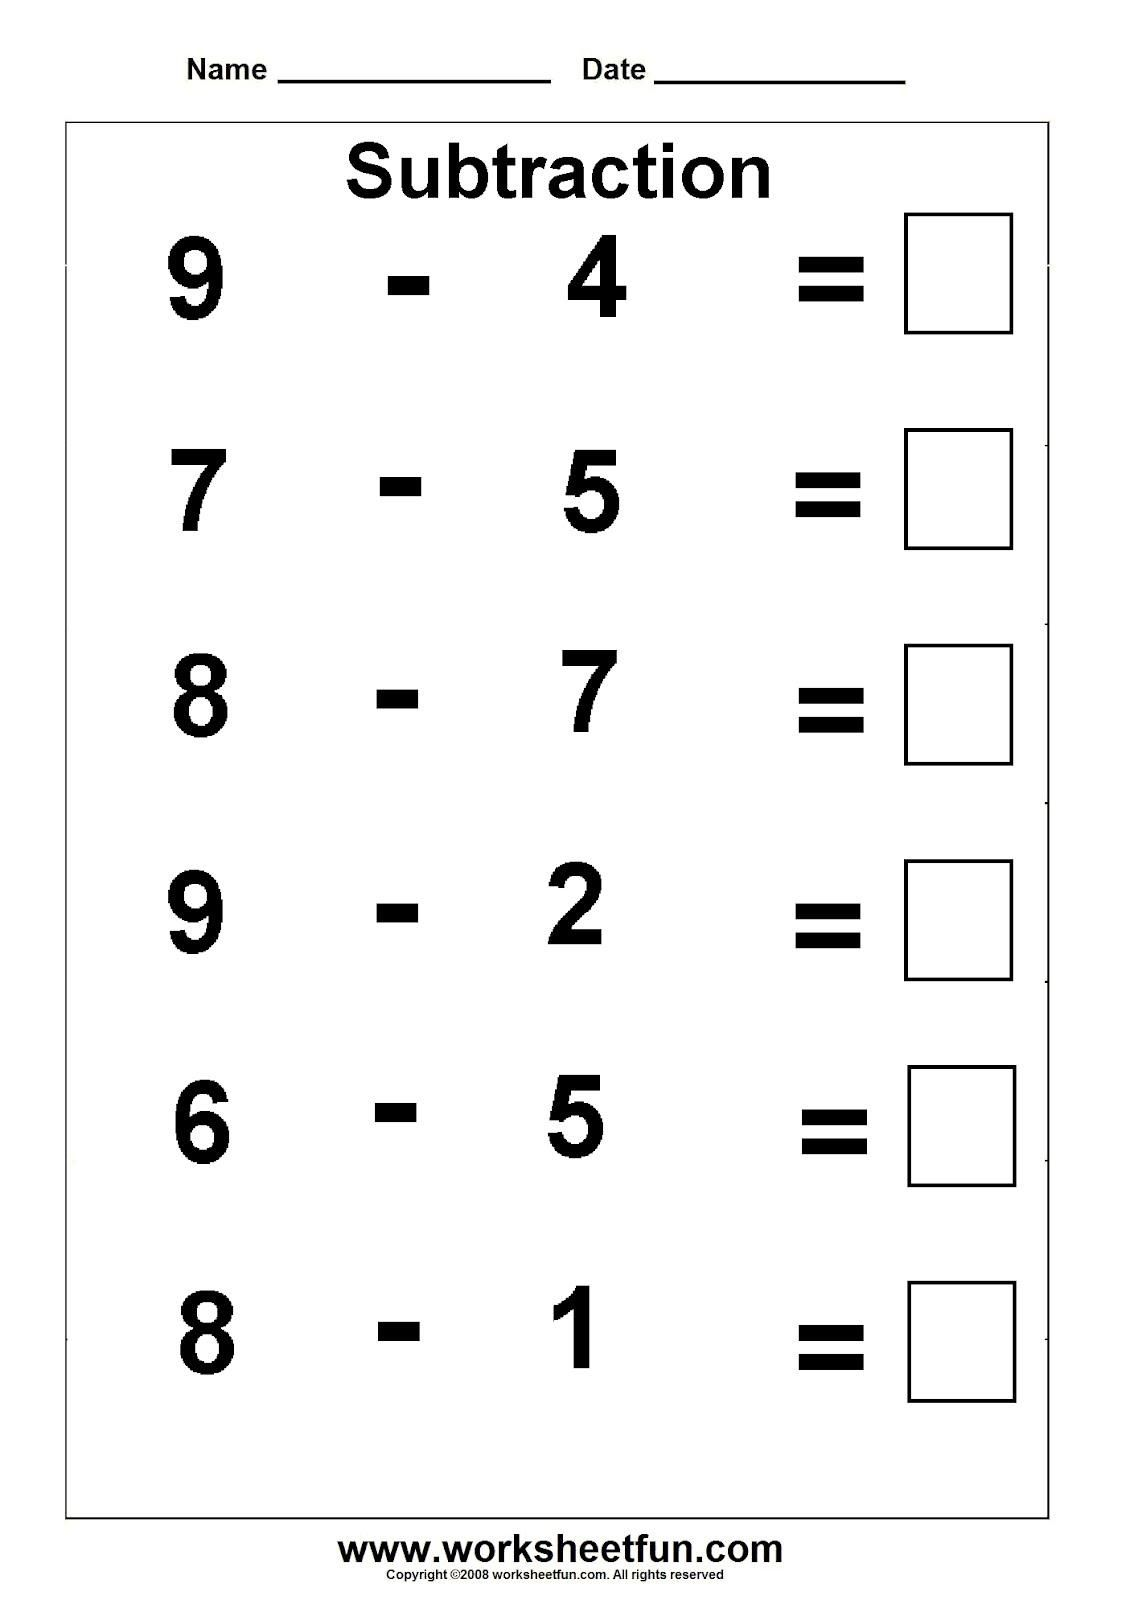 Free Printable Math Worksheets For Kindergarten And First Grade En